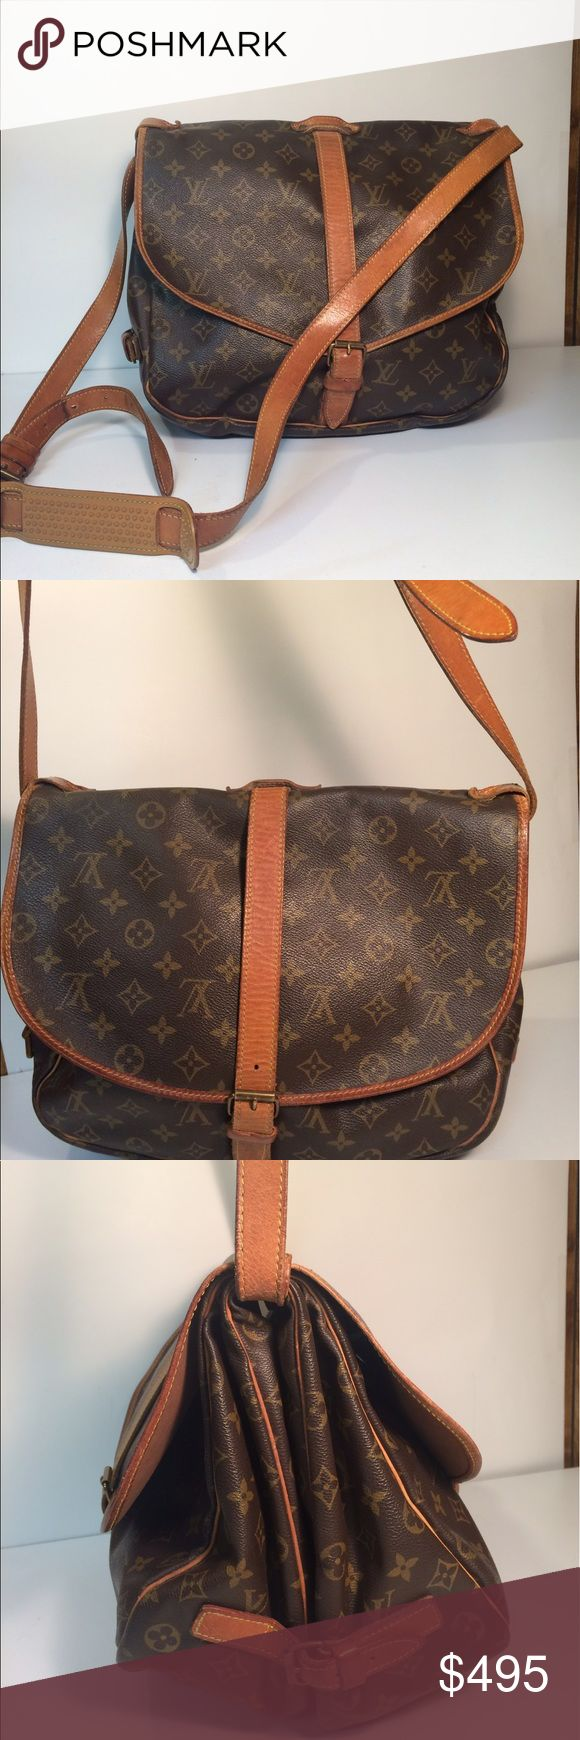 """Louis Vuitton Saumur 35 Cross Body Messenger Bag Louis Vuitton Saumur 35 Cross Body Messenger Bag ... Date code: AR0921 ... Length: 14"""" ... Height: 10.5"""" ... Width: 7"""" .... Shoulder drop: 25"""" ... Features: Adjustable shoulder strap ... 2 Way flap with belted buckle closure ... 2 Way Belted side buckle closure ... 3 Compartments ... 2 Interior slip pockets ... Condition: Normal sign of use ... Exterior leather / Hardware wear .... Leather patina ... Guaranteed Authentic. Louis Vuitton Bags…"""